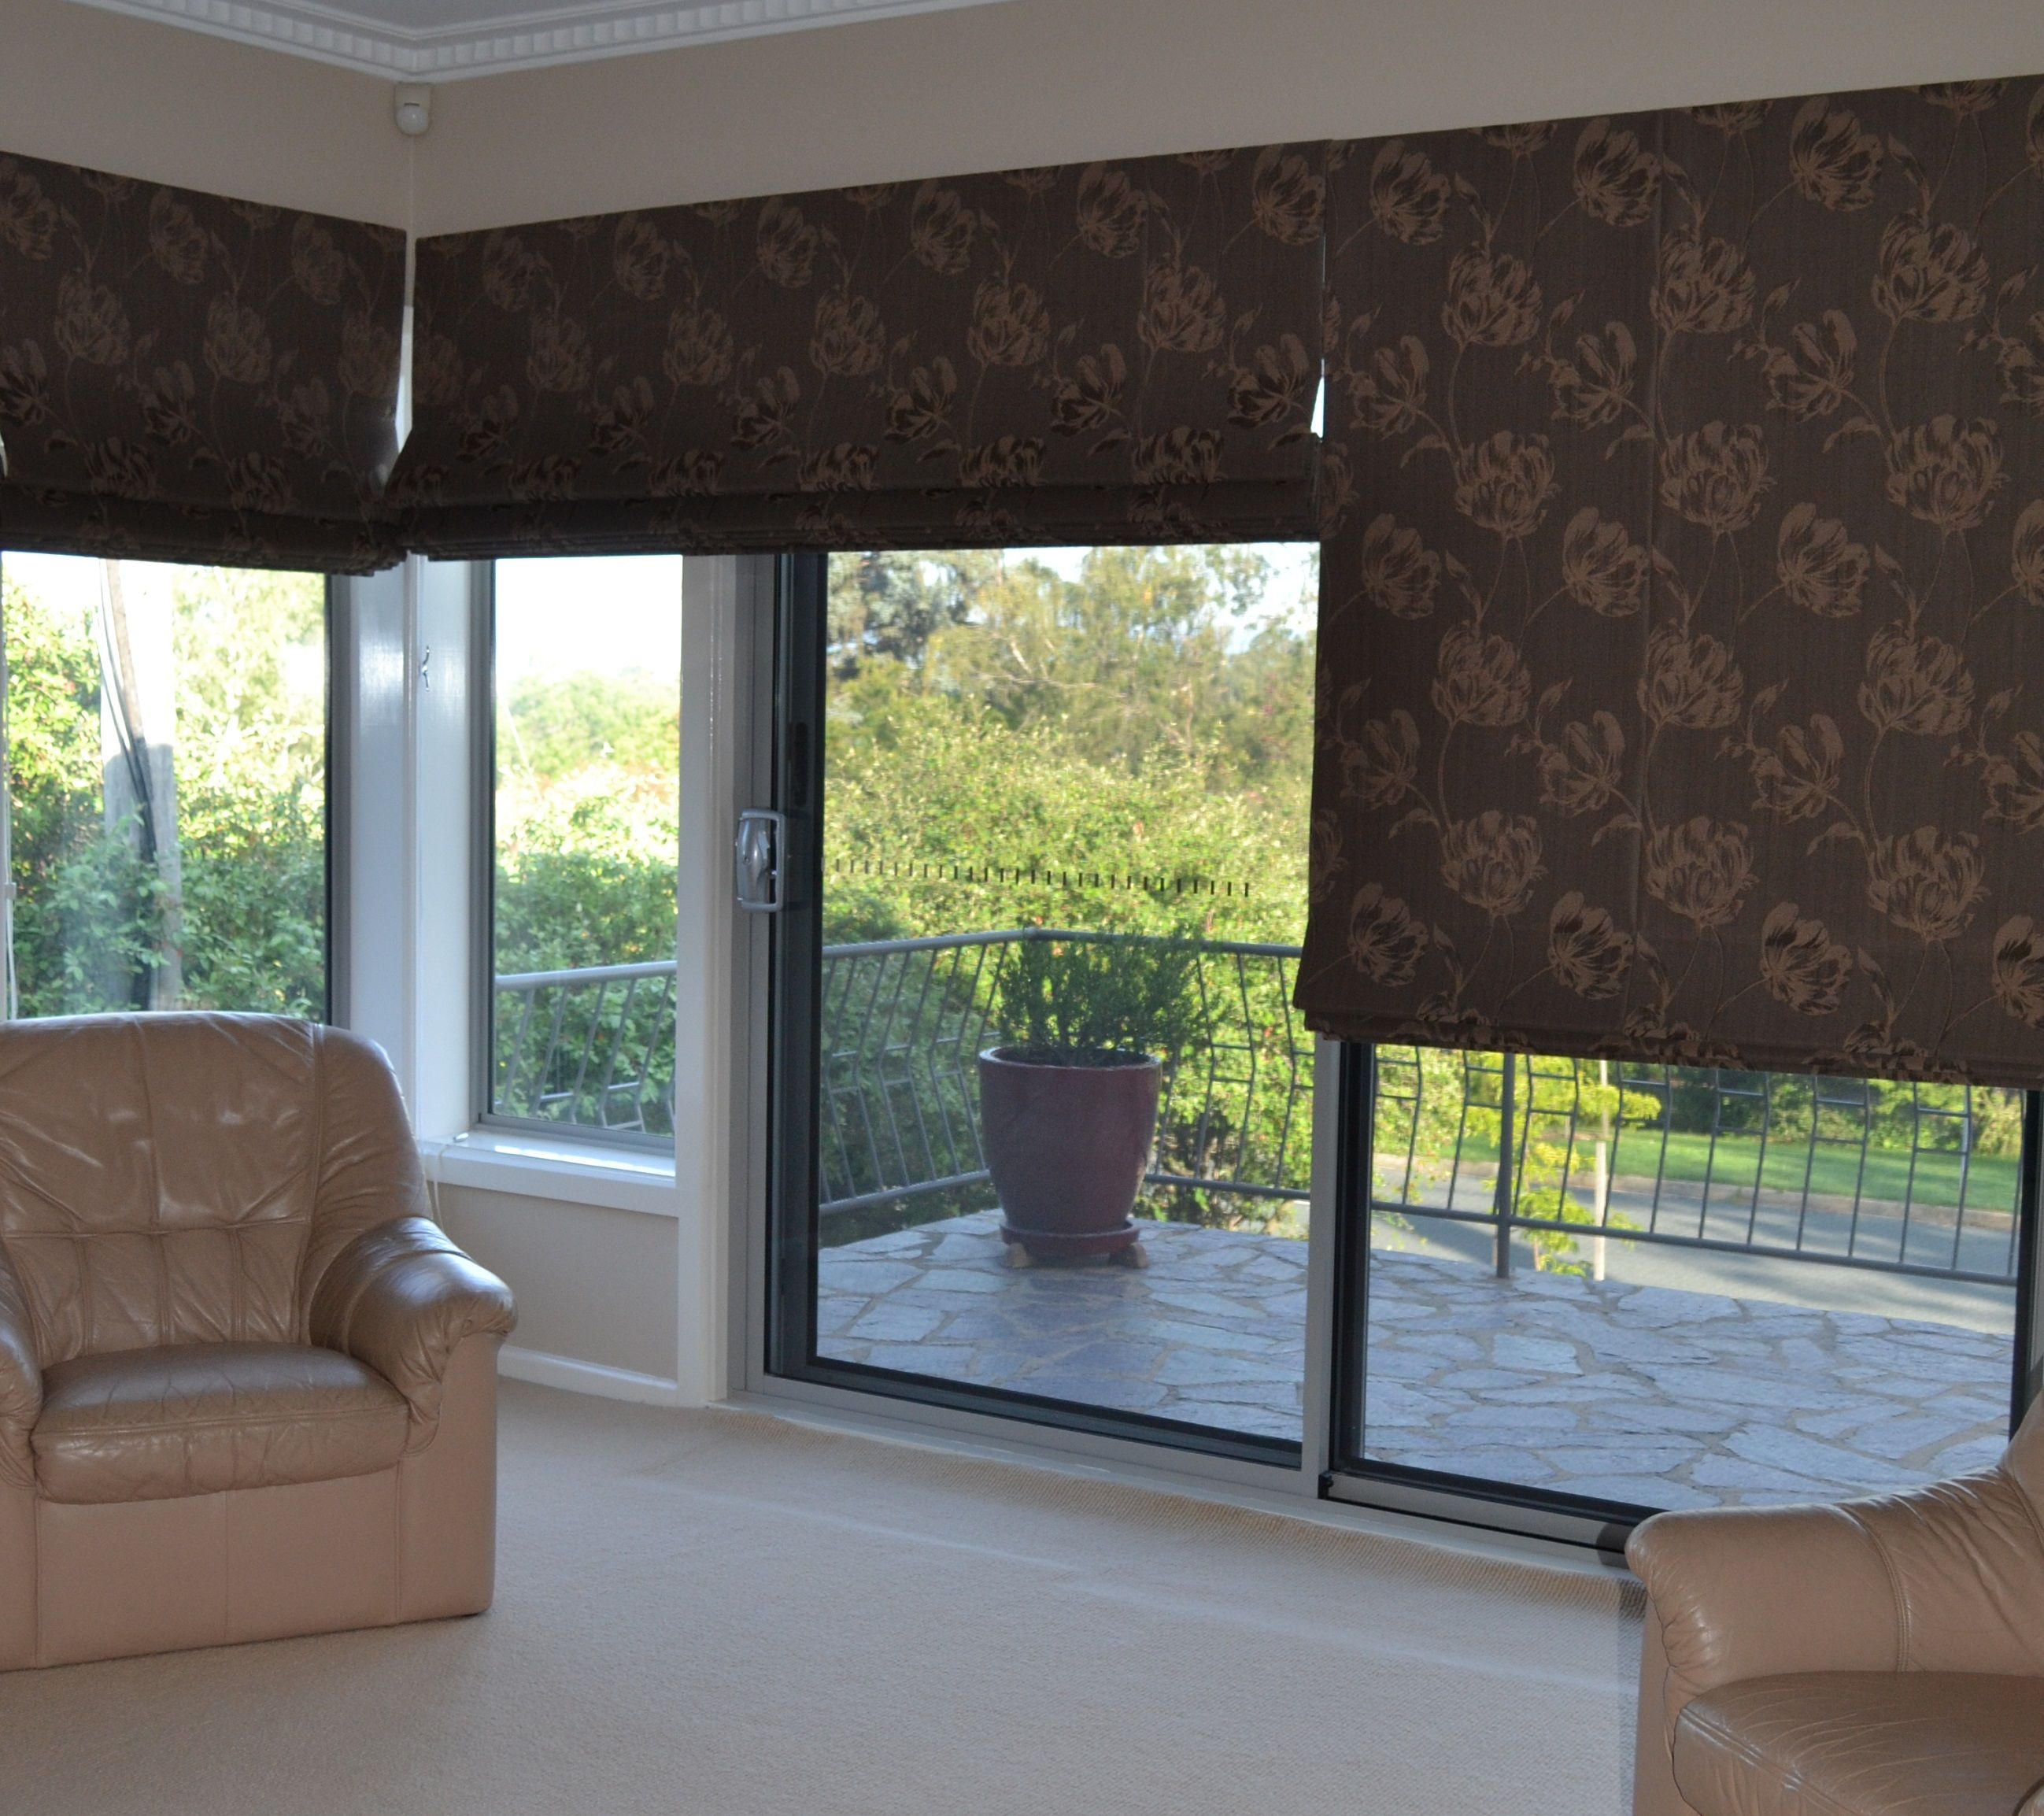 Window coverings for sliders  roman blinds  blinds  pinterest  blinds curtains and roman blinds